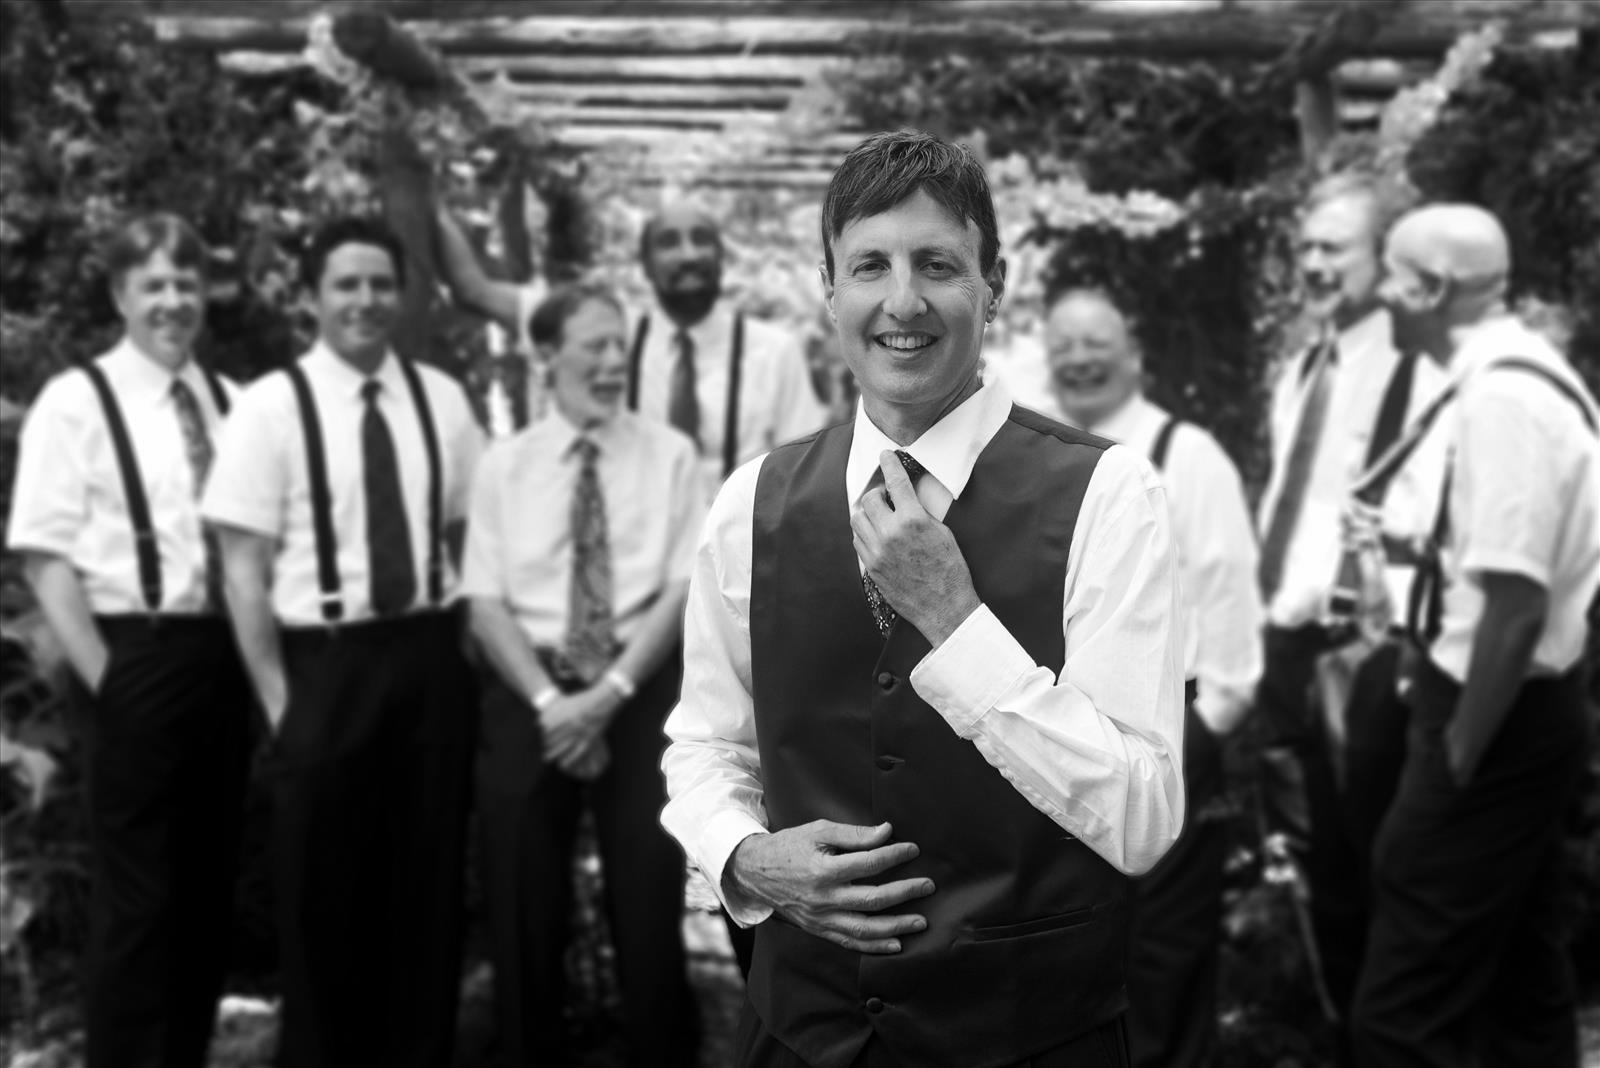 JK Wedding Hurricane Images Groomsmen